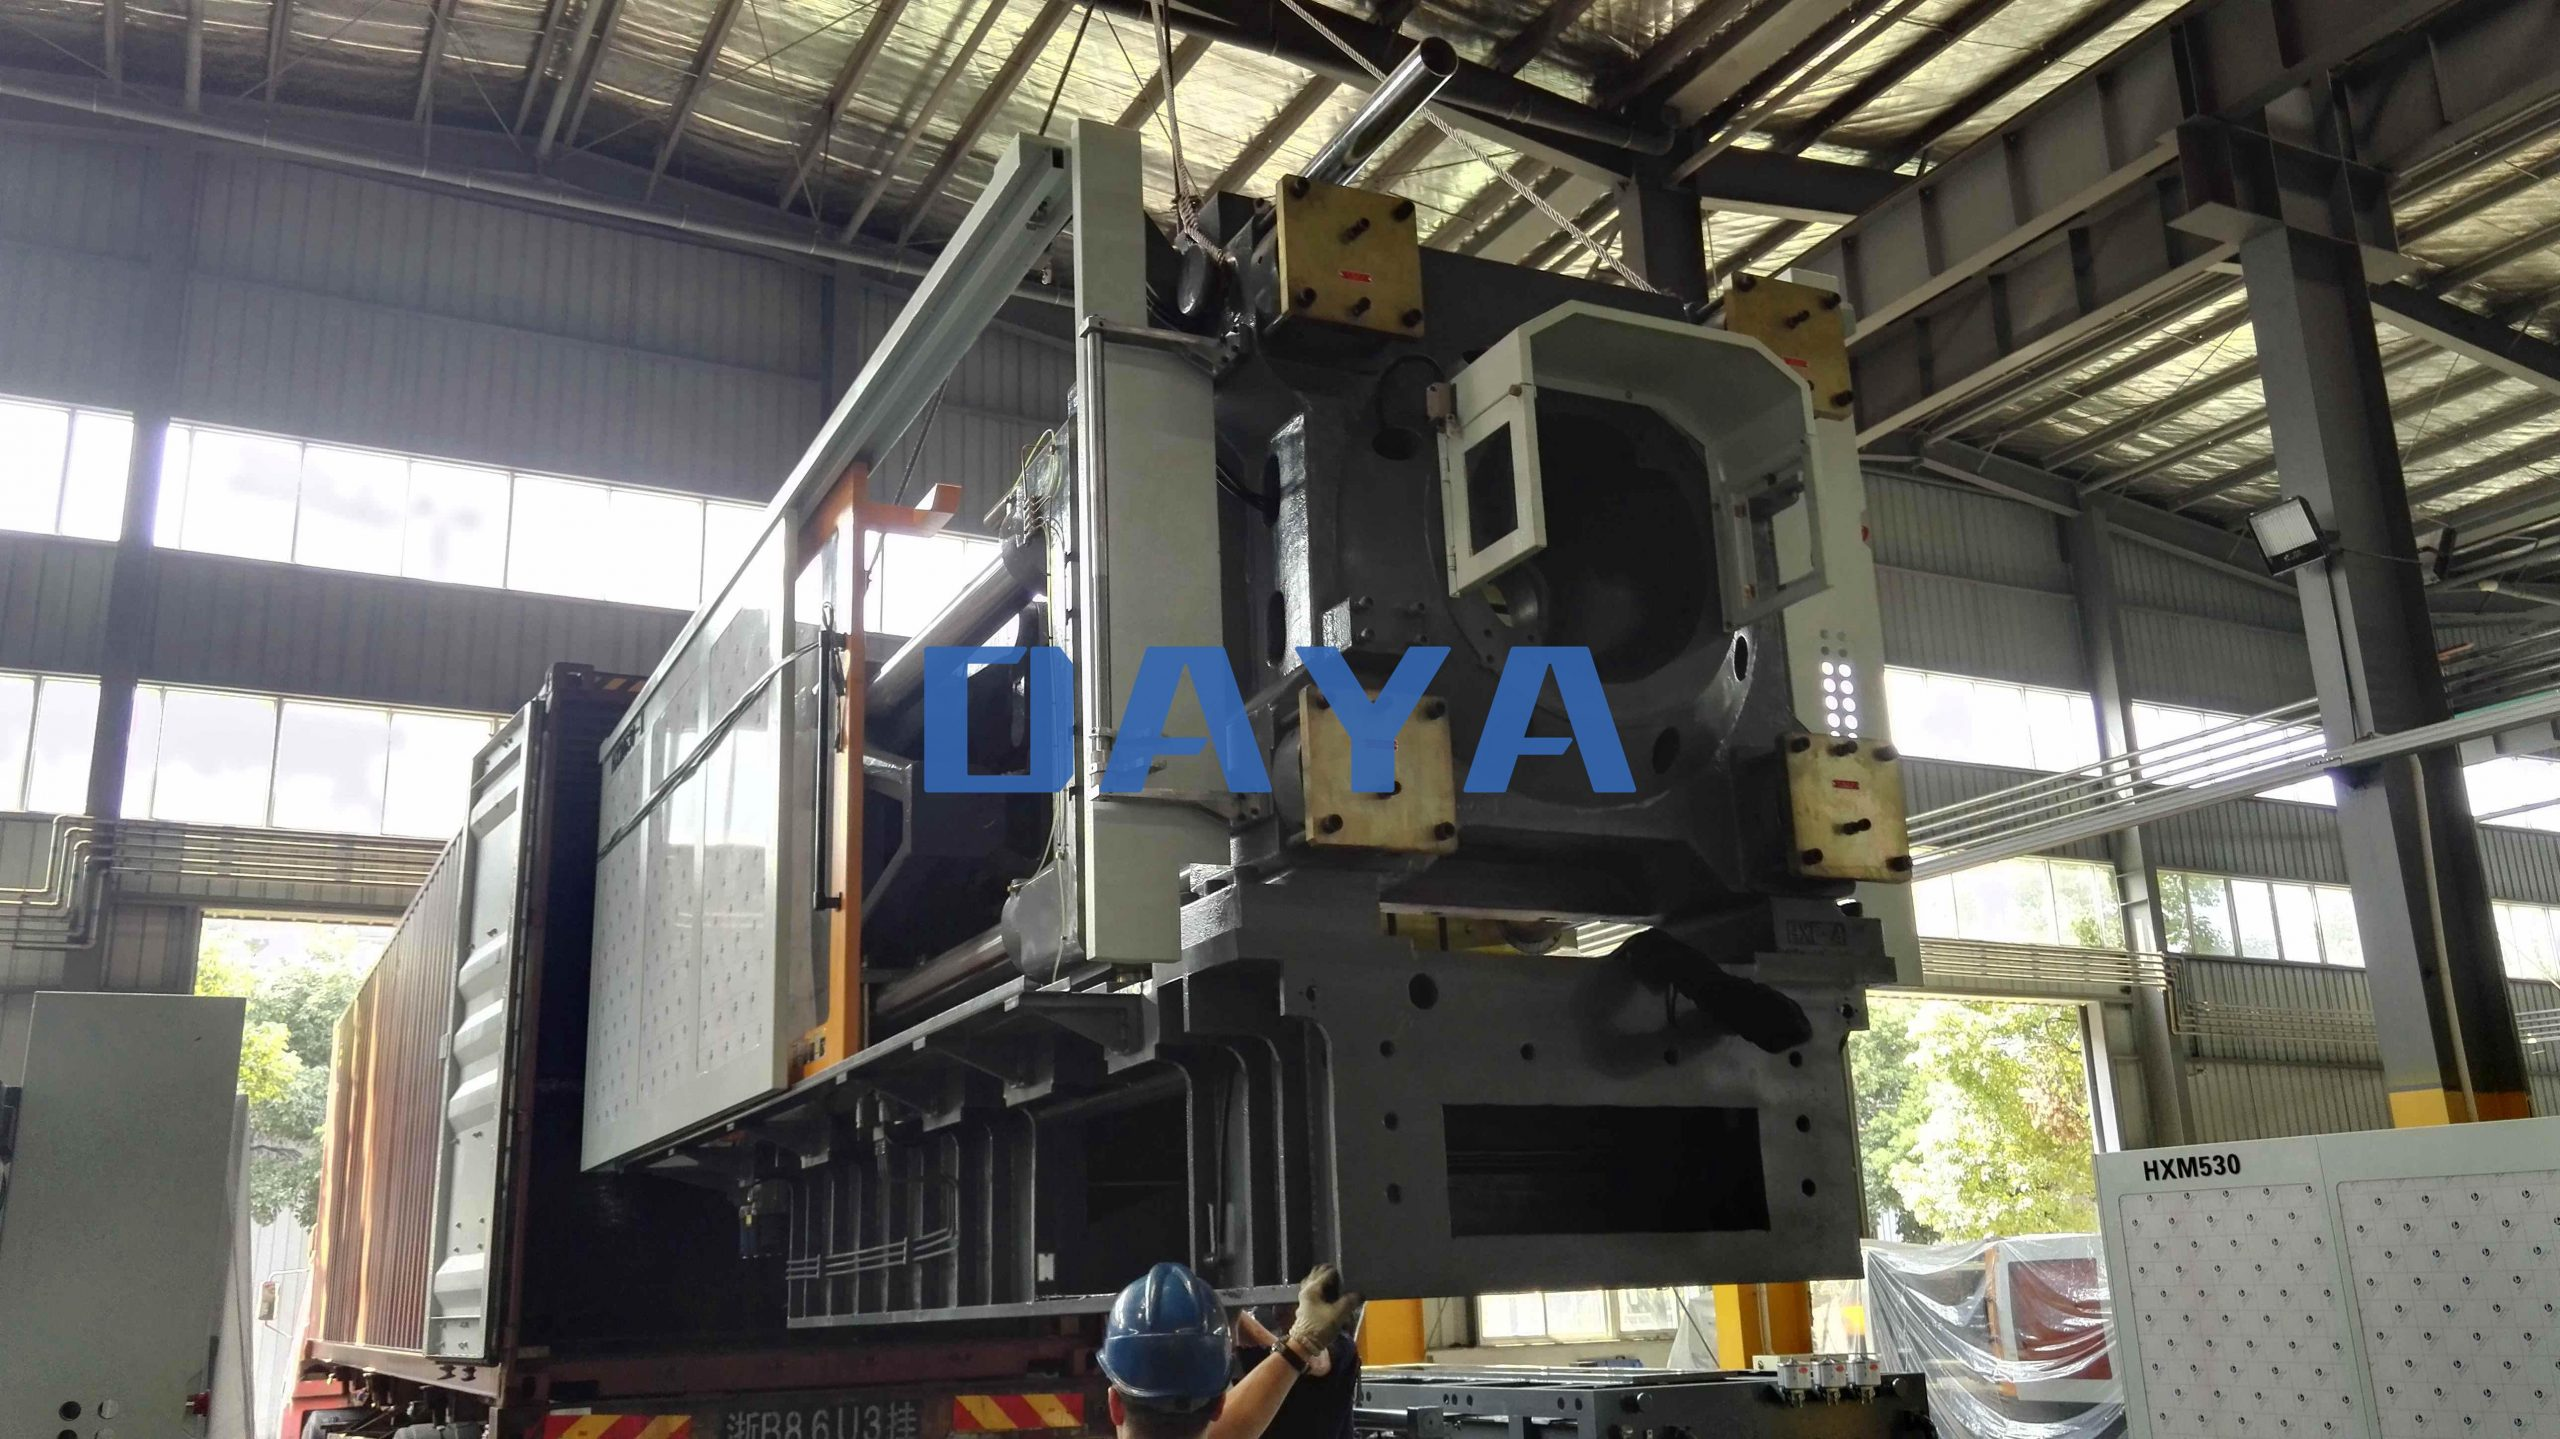 600 ton injection molding machine load and shipment